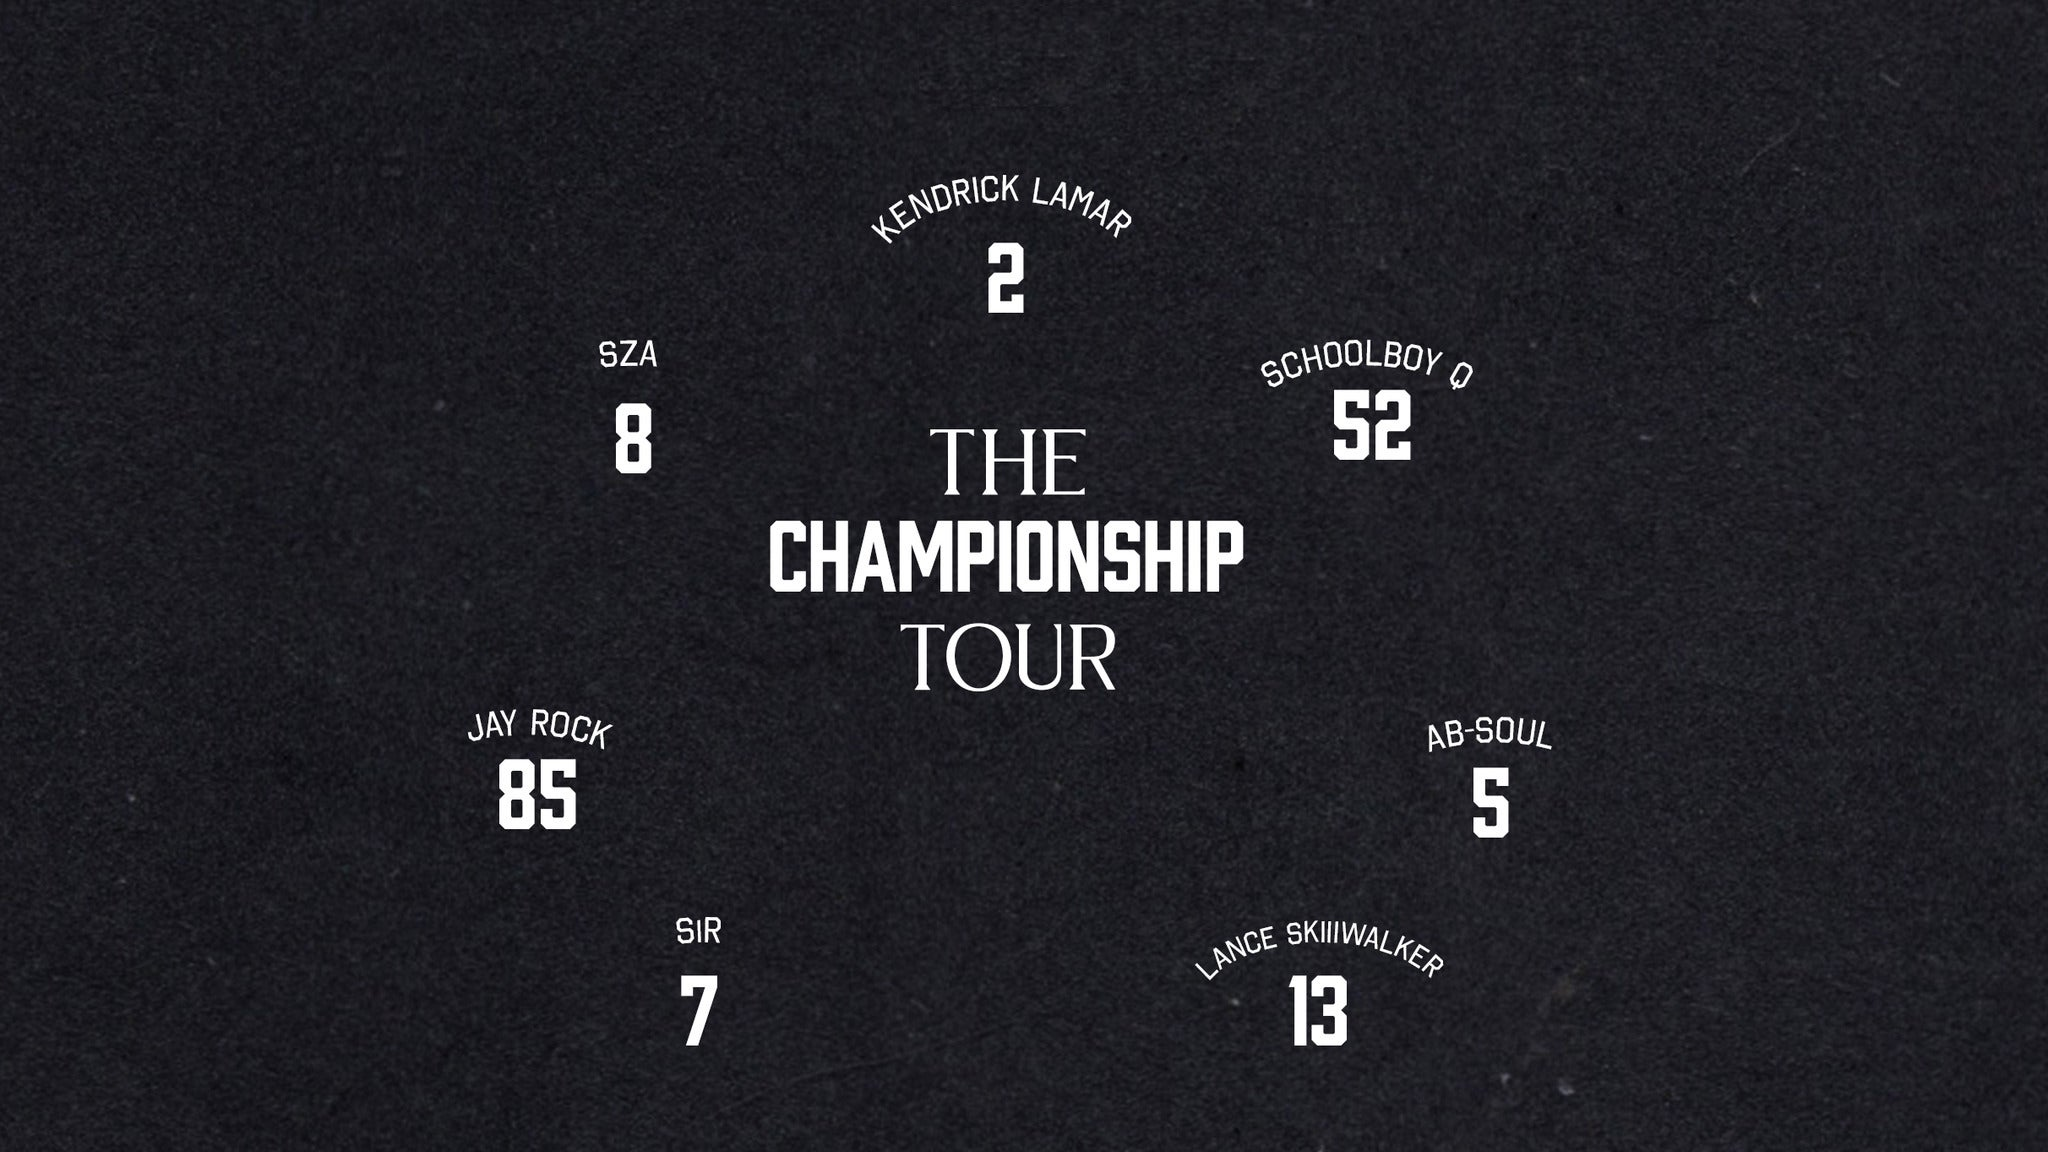 STAR Box Experience - The Championship Tour